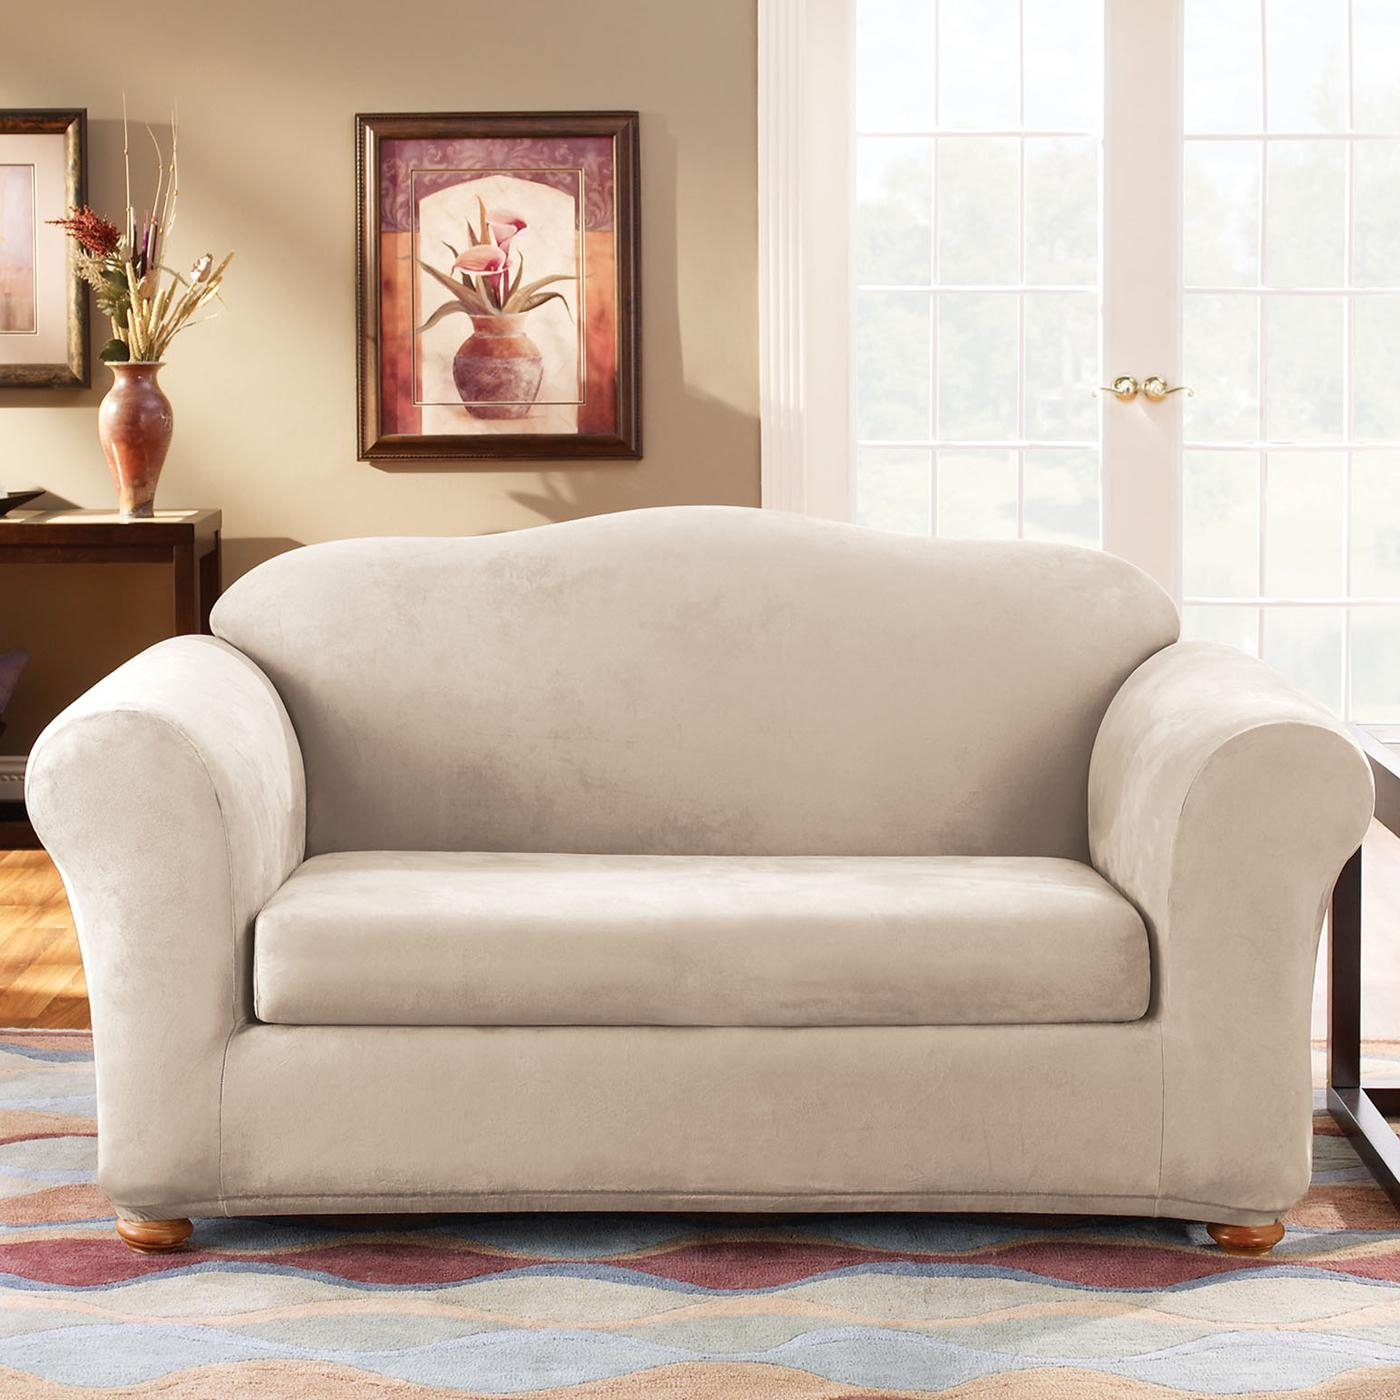 Sure Fit Slipcovers Form Fit Stretch Suede 2 Piece Sofa Slipcover Intended For Suede Slipcovers For Sofas (Image 17 of 20)